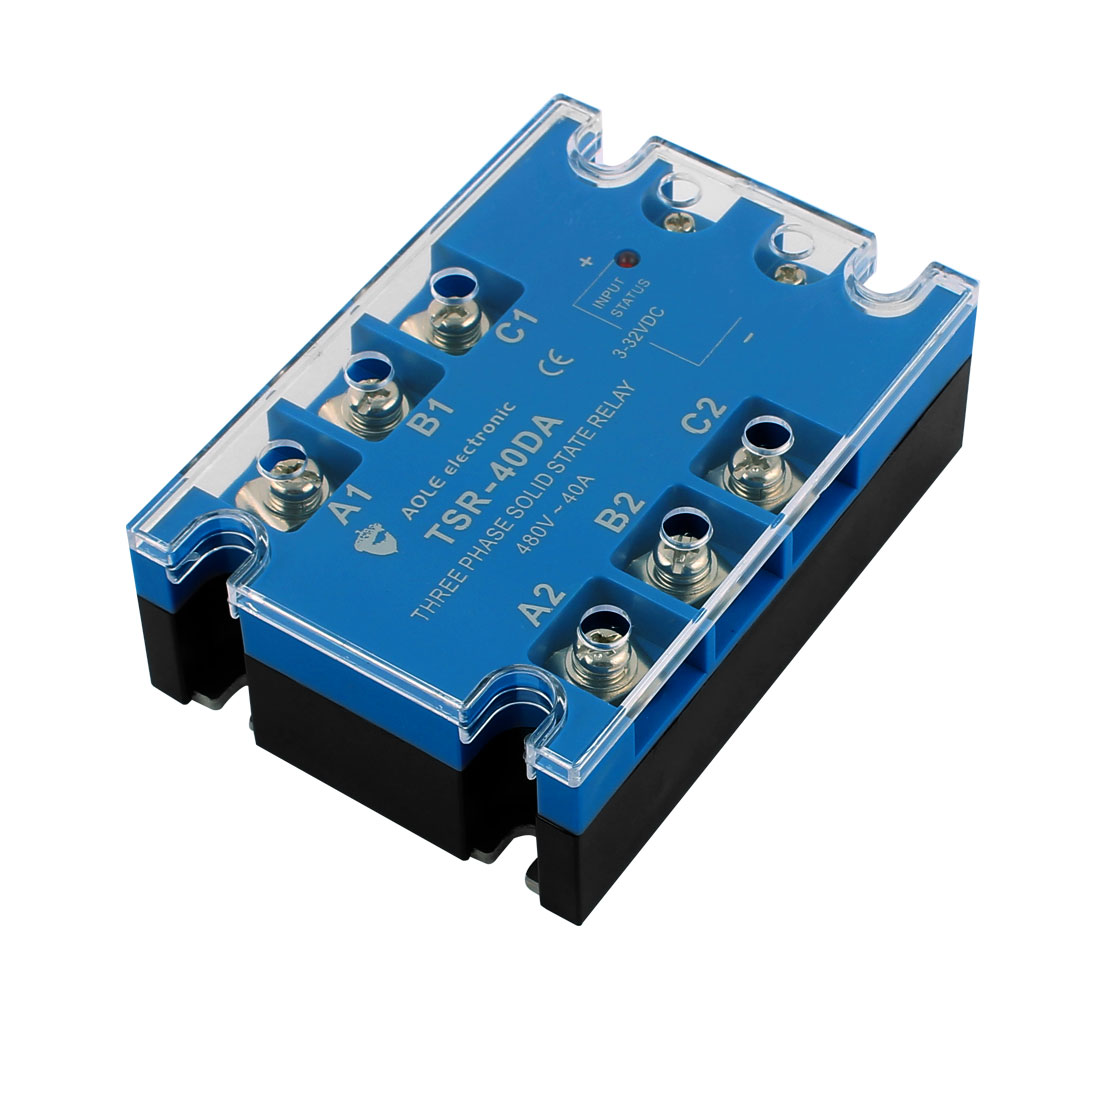 ФОТО Tsr-40Da 3-32Vdc To 480Vac 40A Three Phase Solid State Relay Module  To Ac